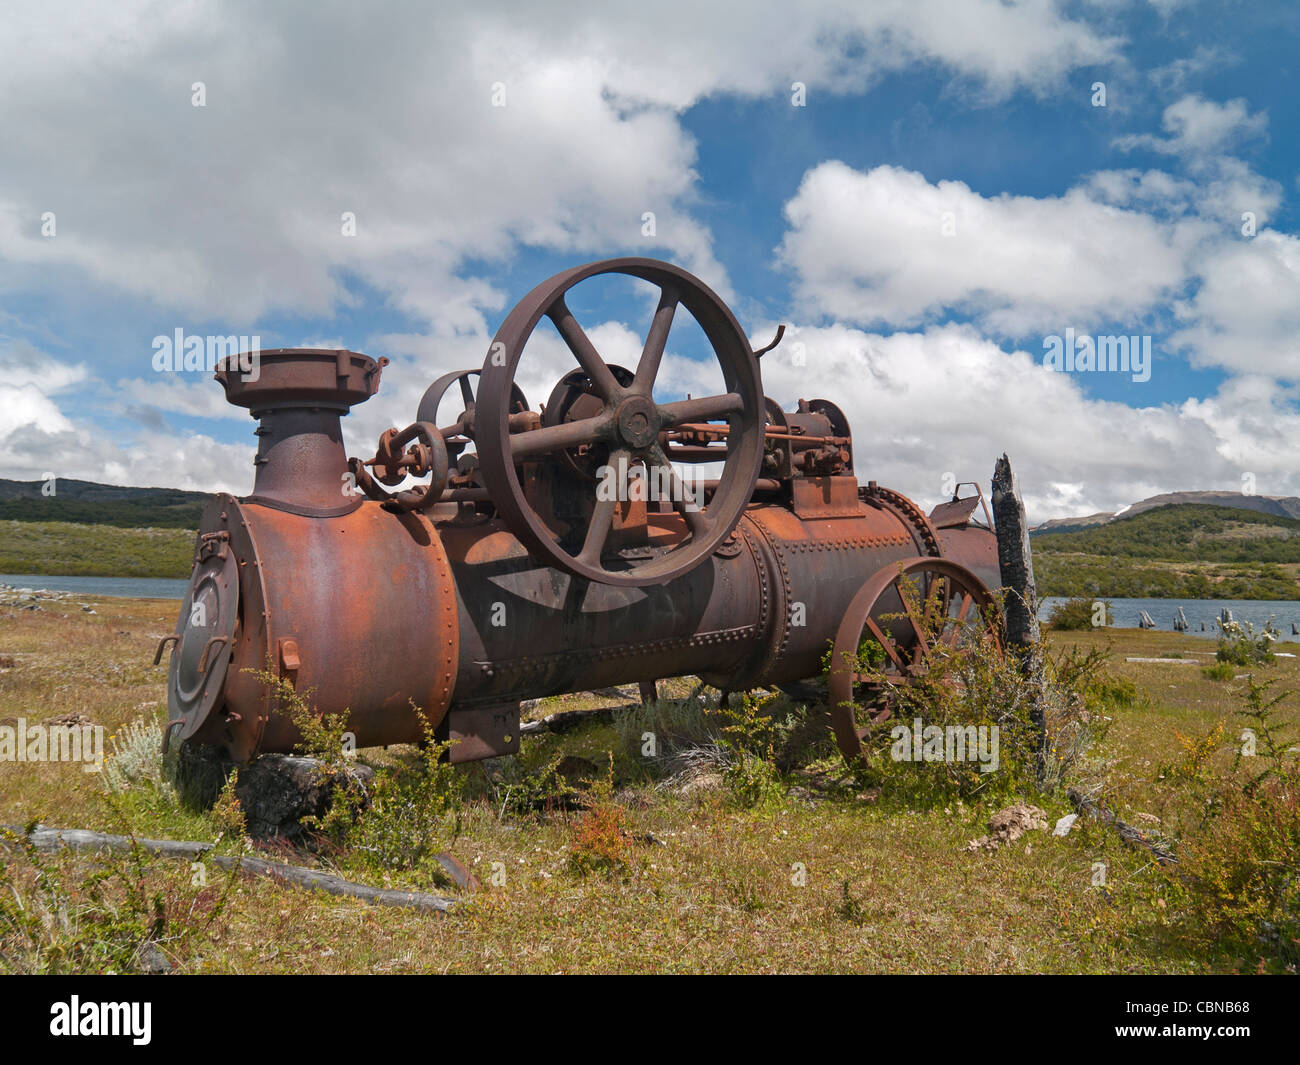 OLYMPUS DIGITAL CAMERA Old steam machine, used on a patagonic sawmill - Stock Image